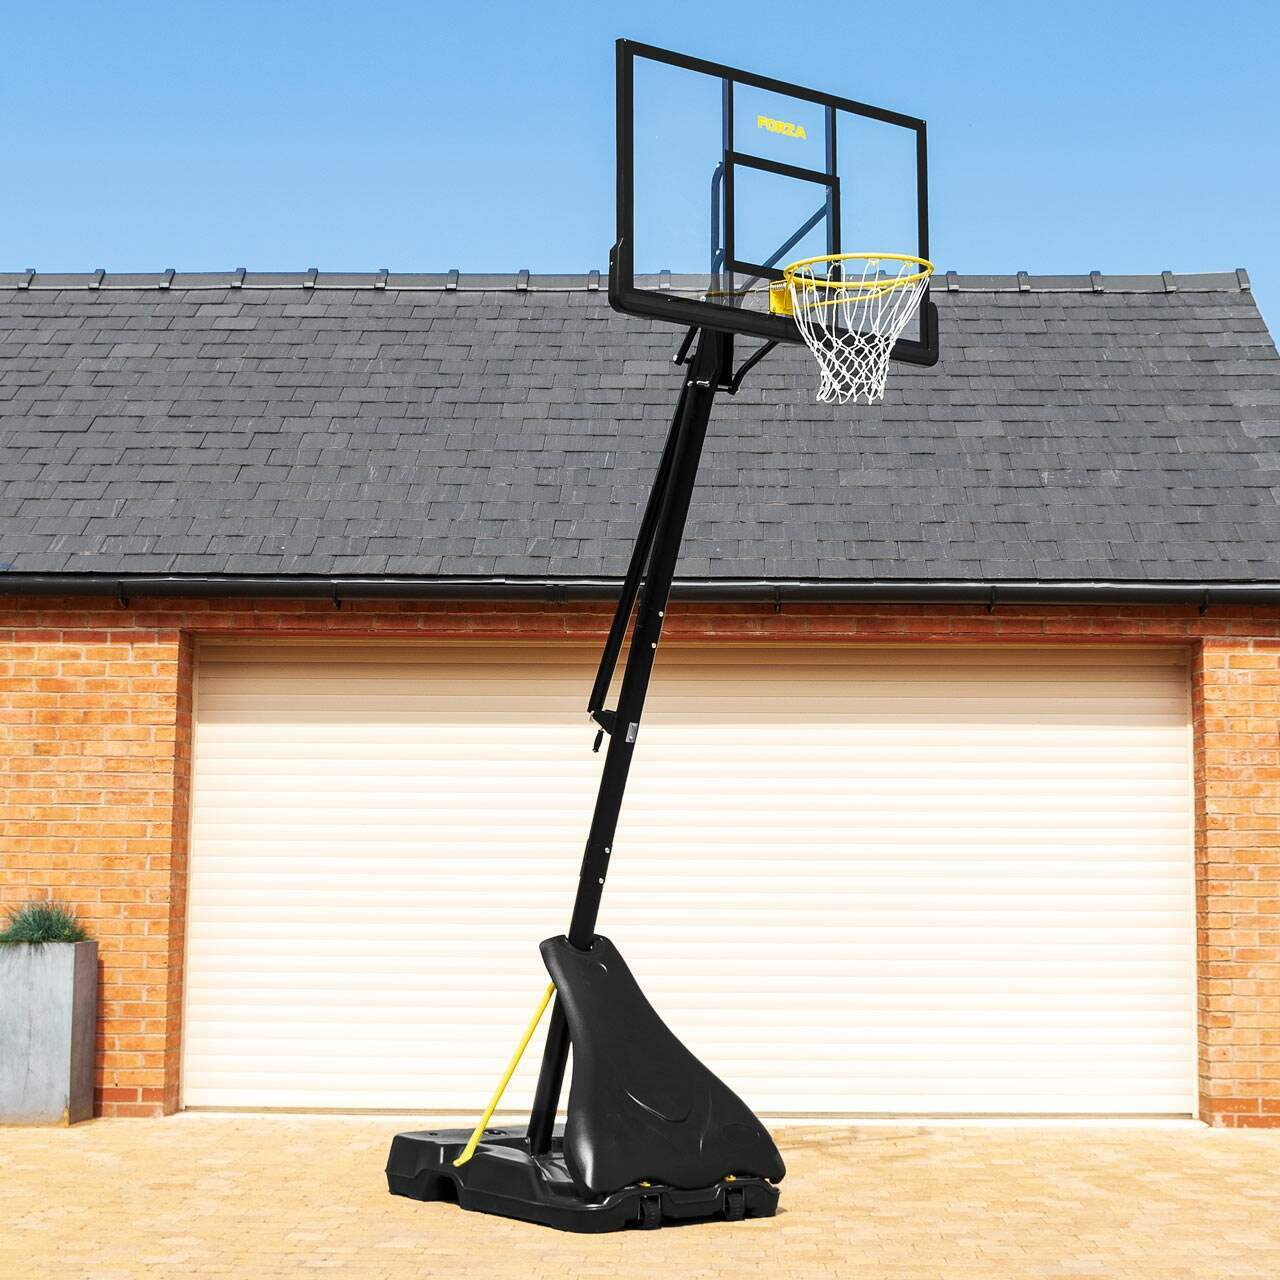 FORZA Adjustable Basketball Hoop And Stand [JS420 ELITE]